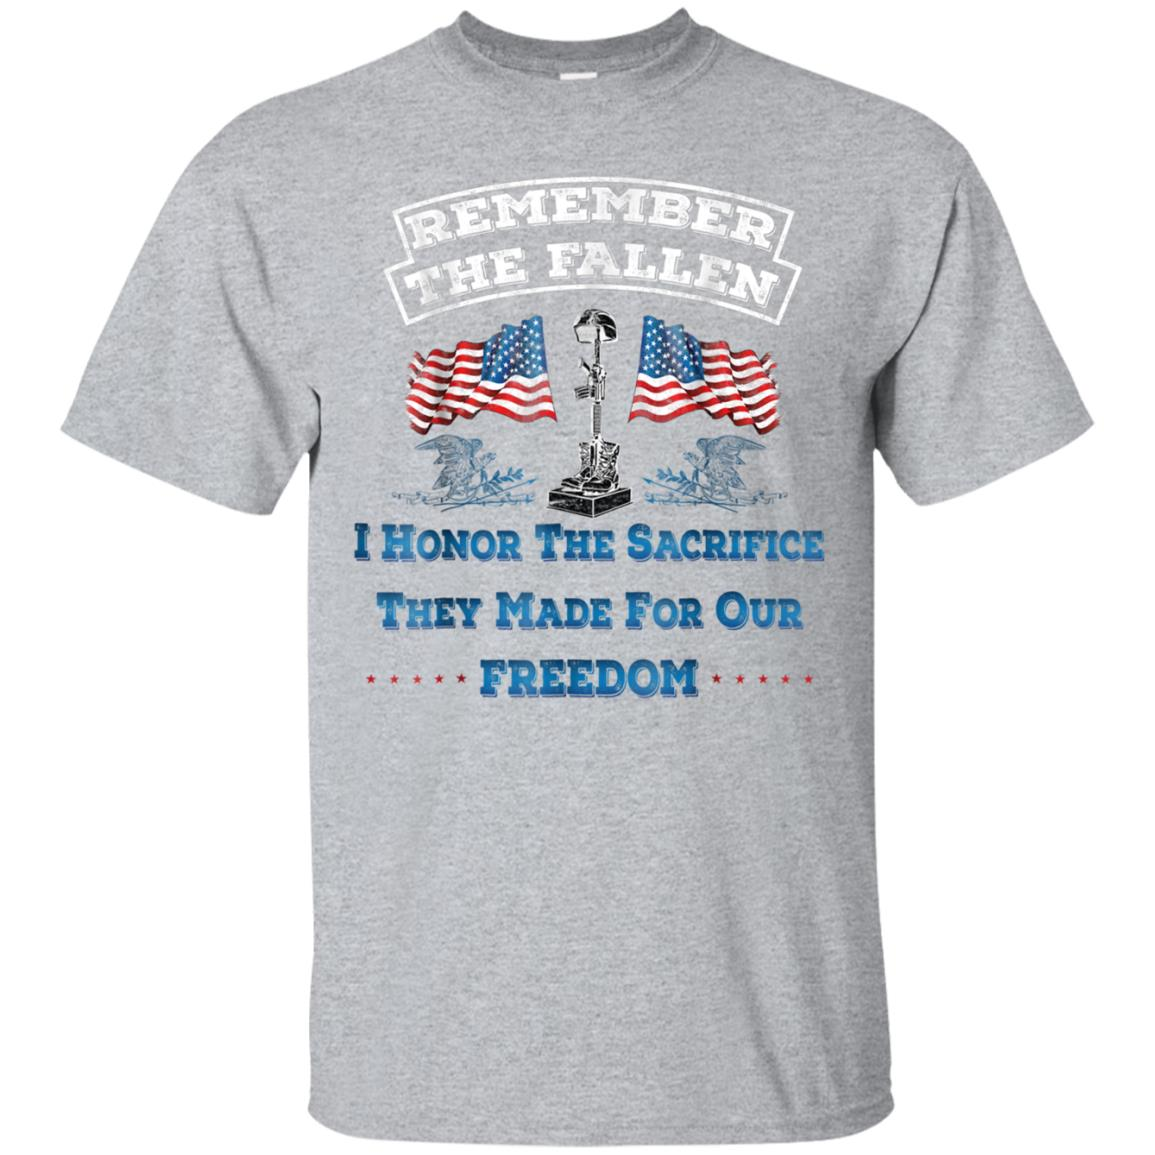 Memorial Day Veterans Day 2018 T-shirt, Remember The Fallen 99promocode